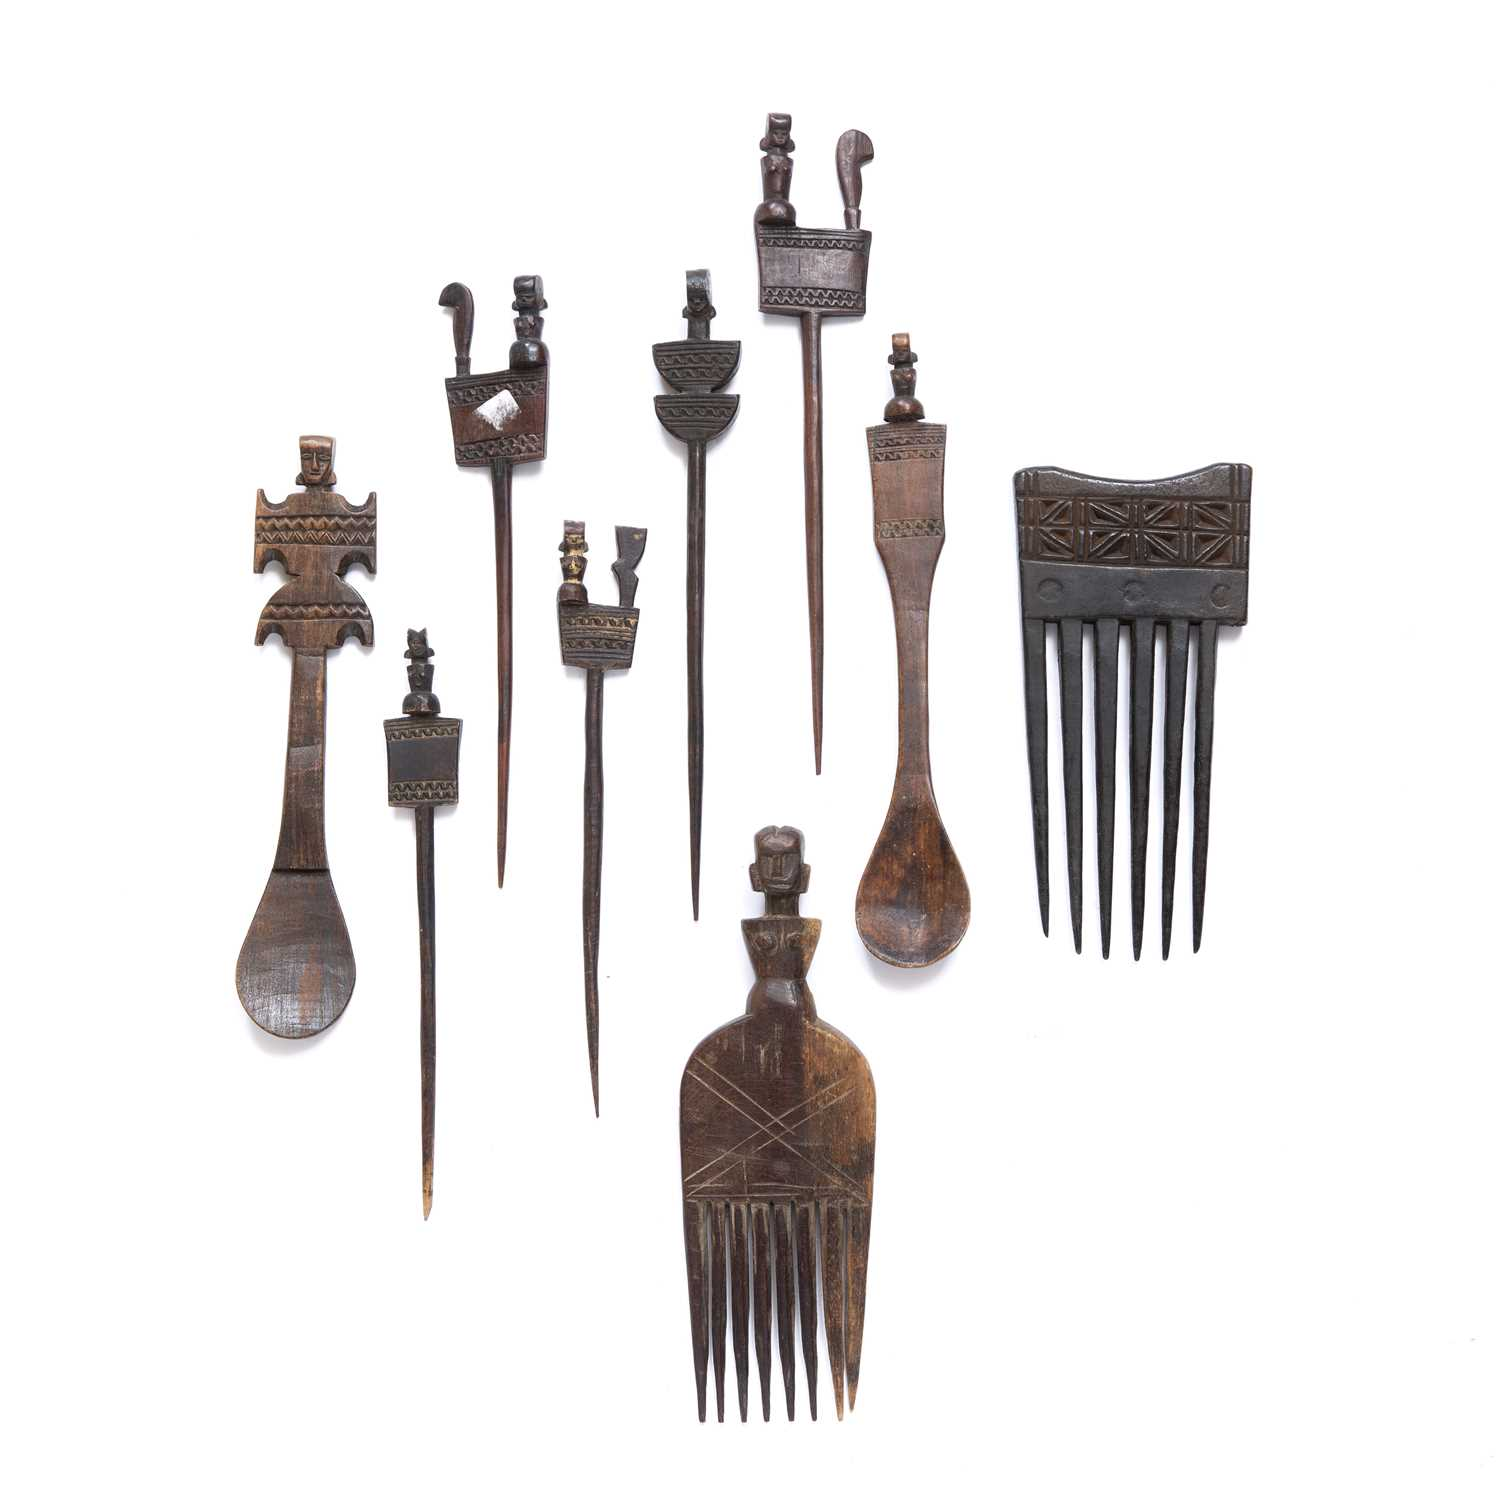 African Hemba hair combs and spoons, nine in total all carved wood, some with carved with figures to